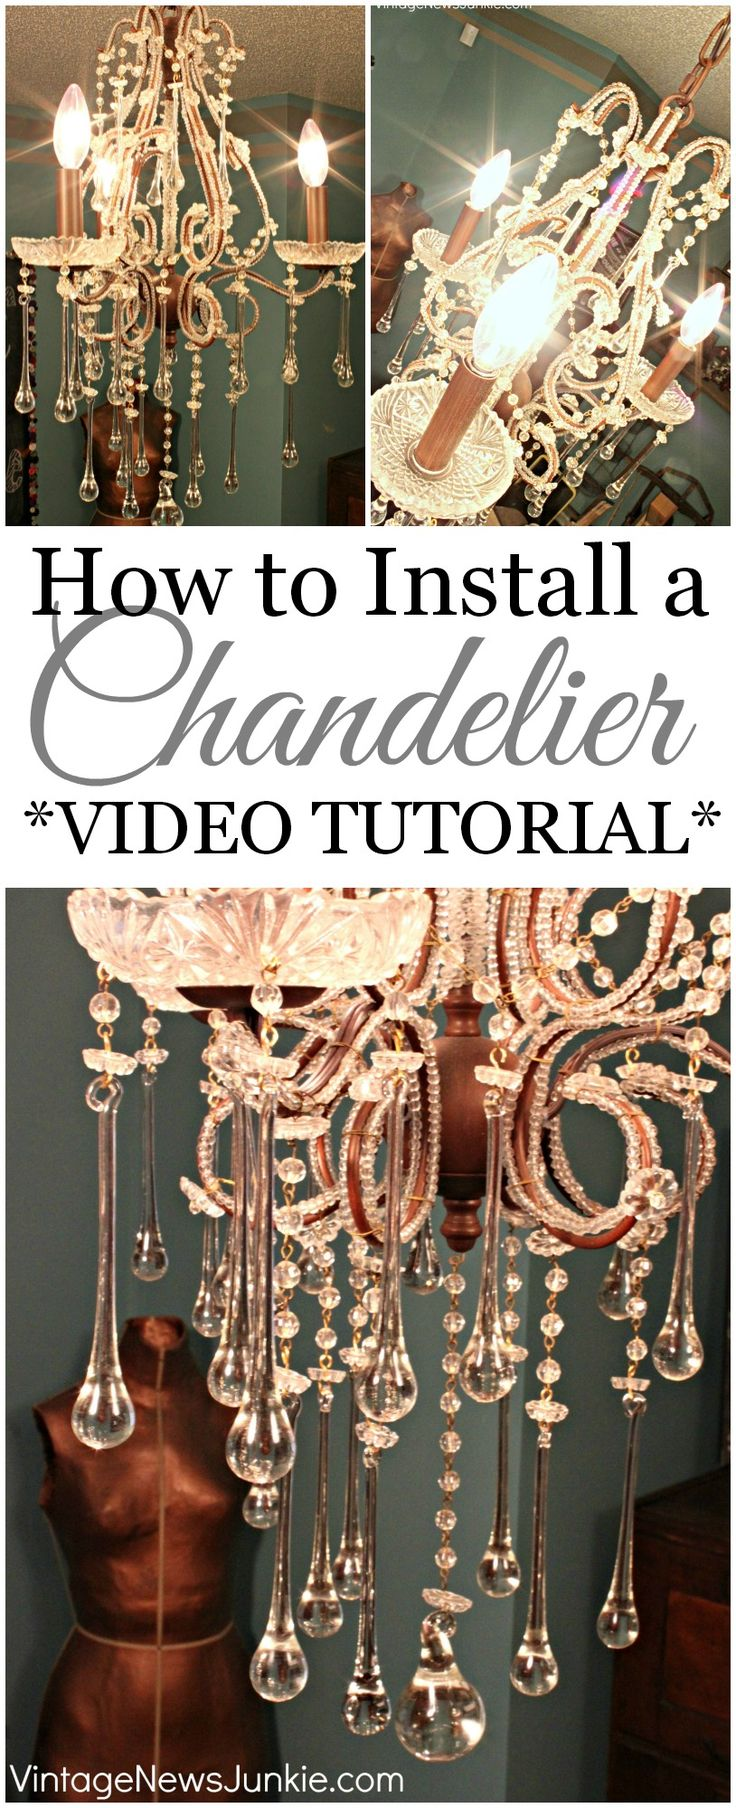 Awesome Video Tutorial for Installing a Light Fixture!!